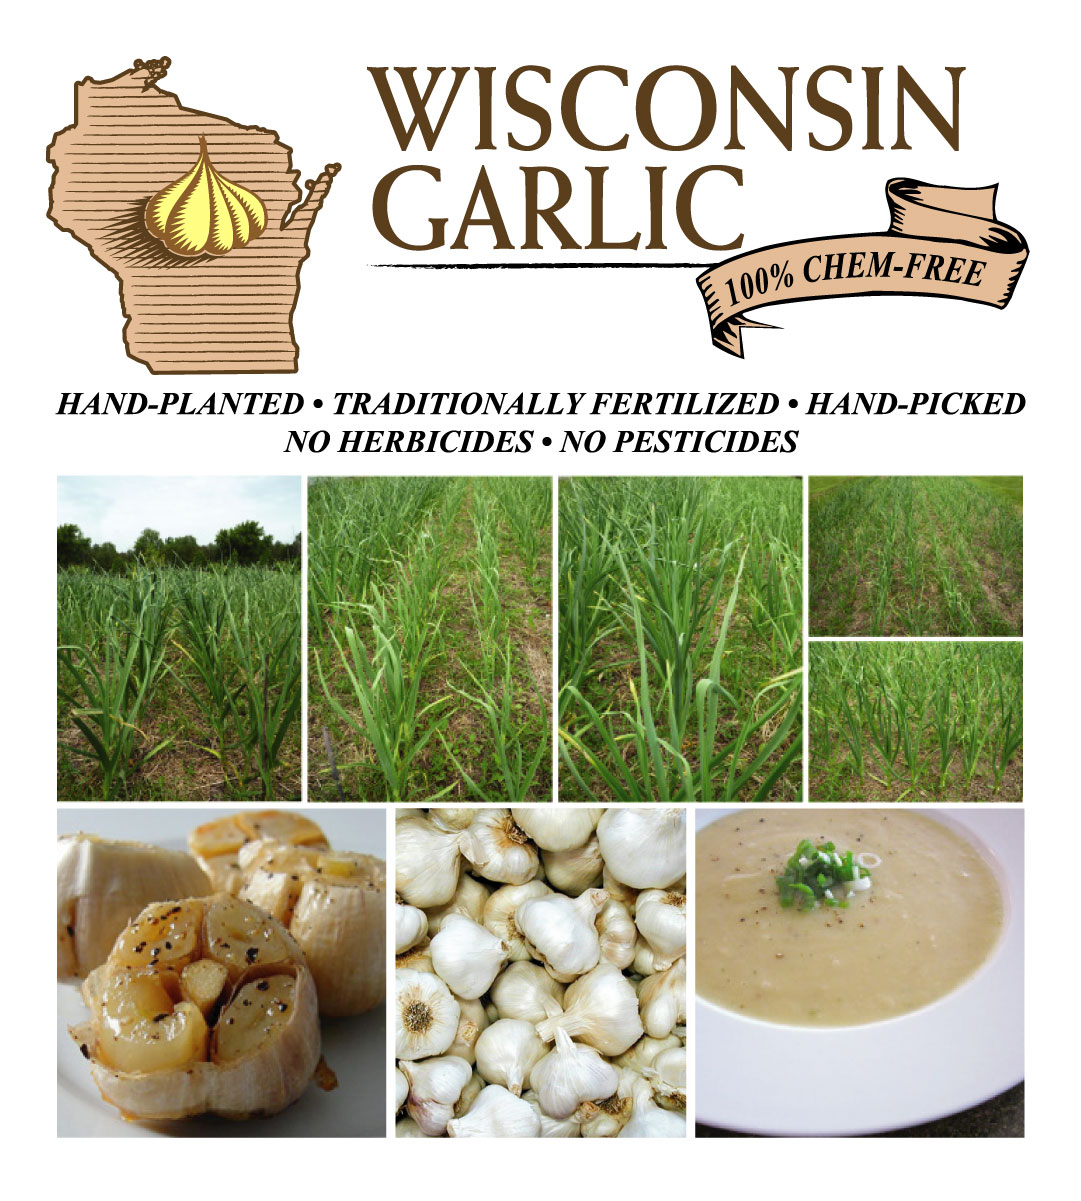 img-wisconsingarlic-banner-mobile